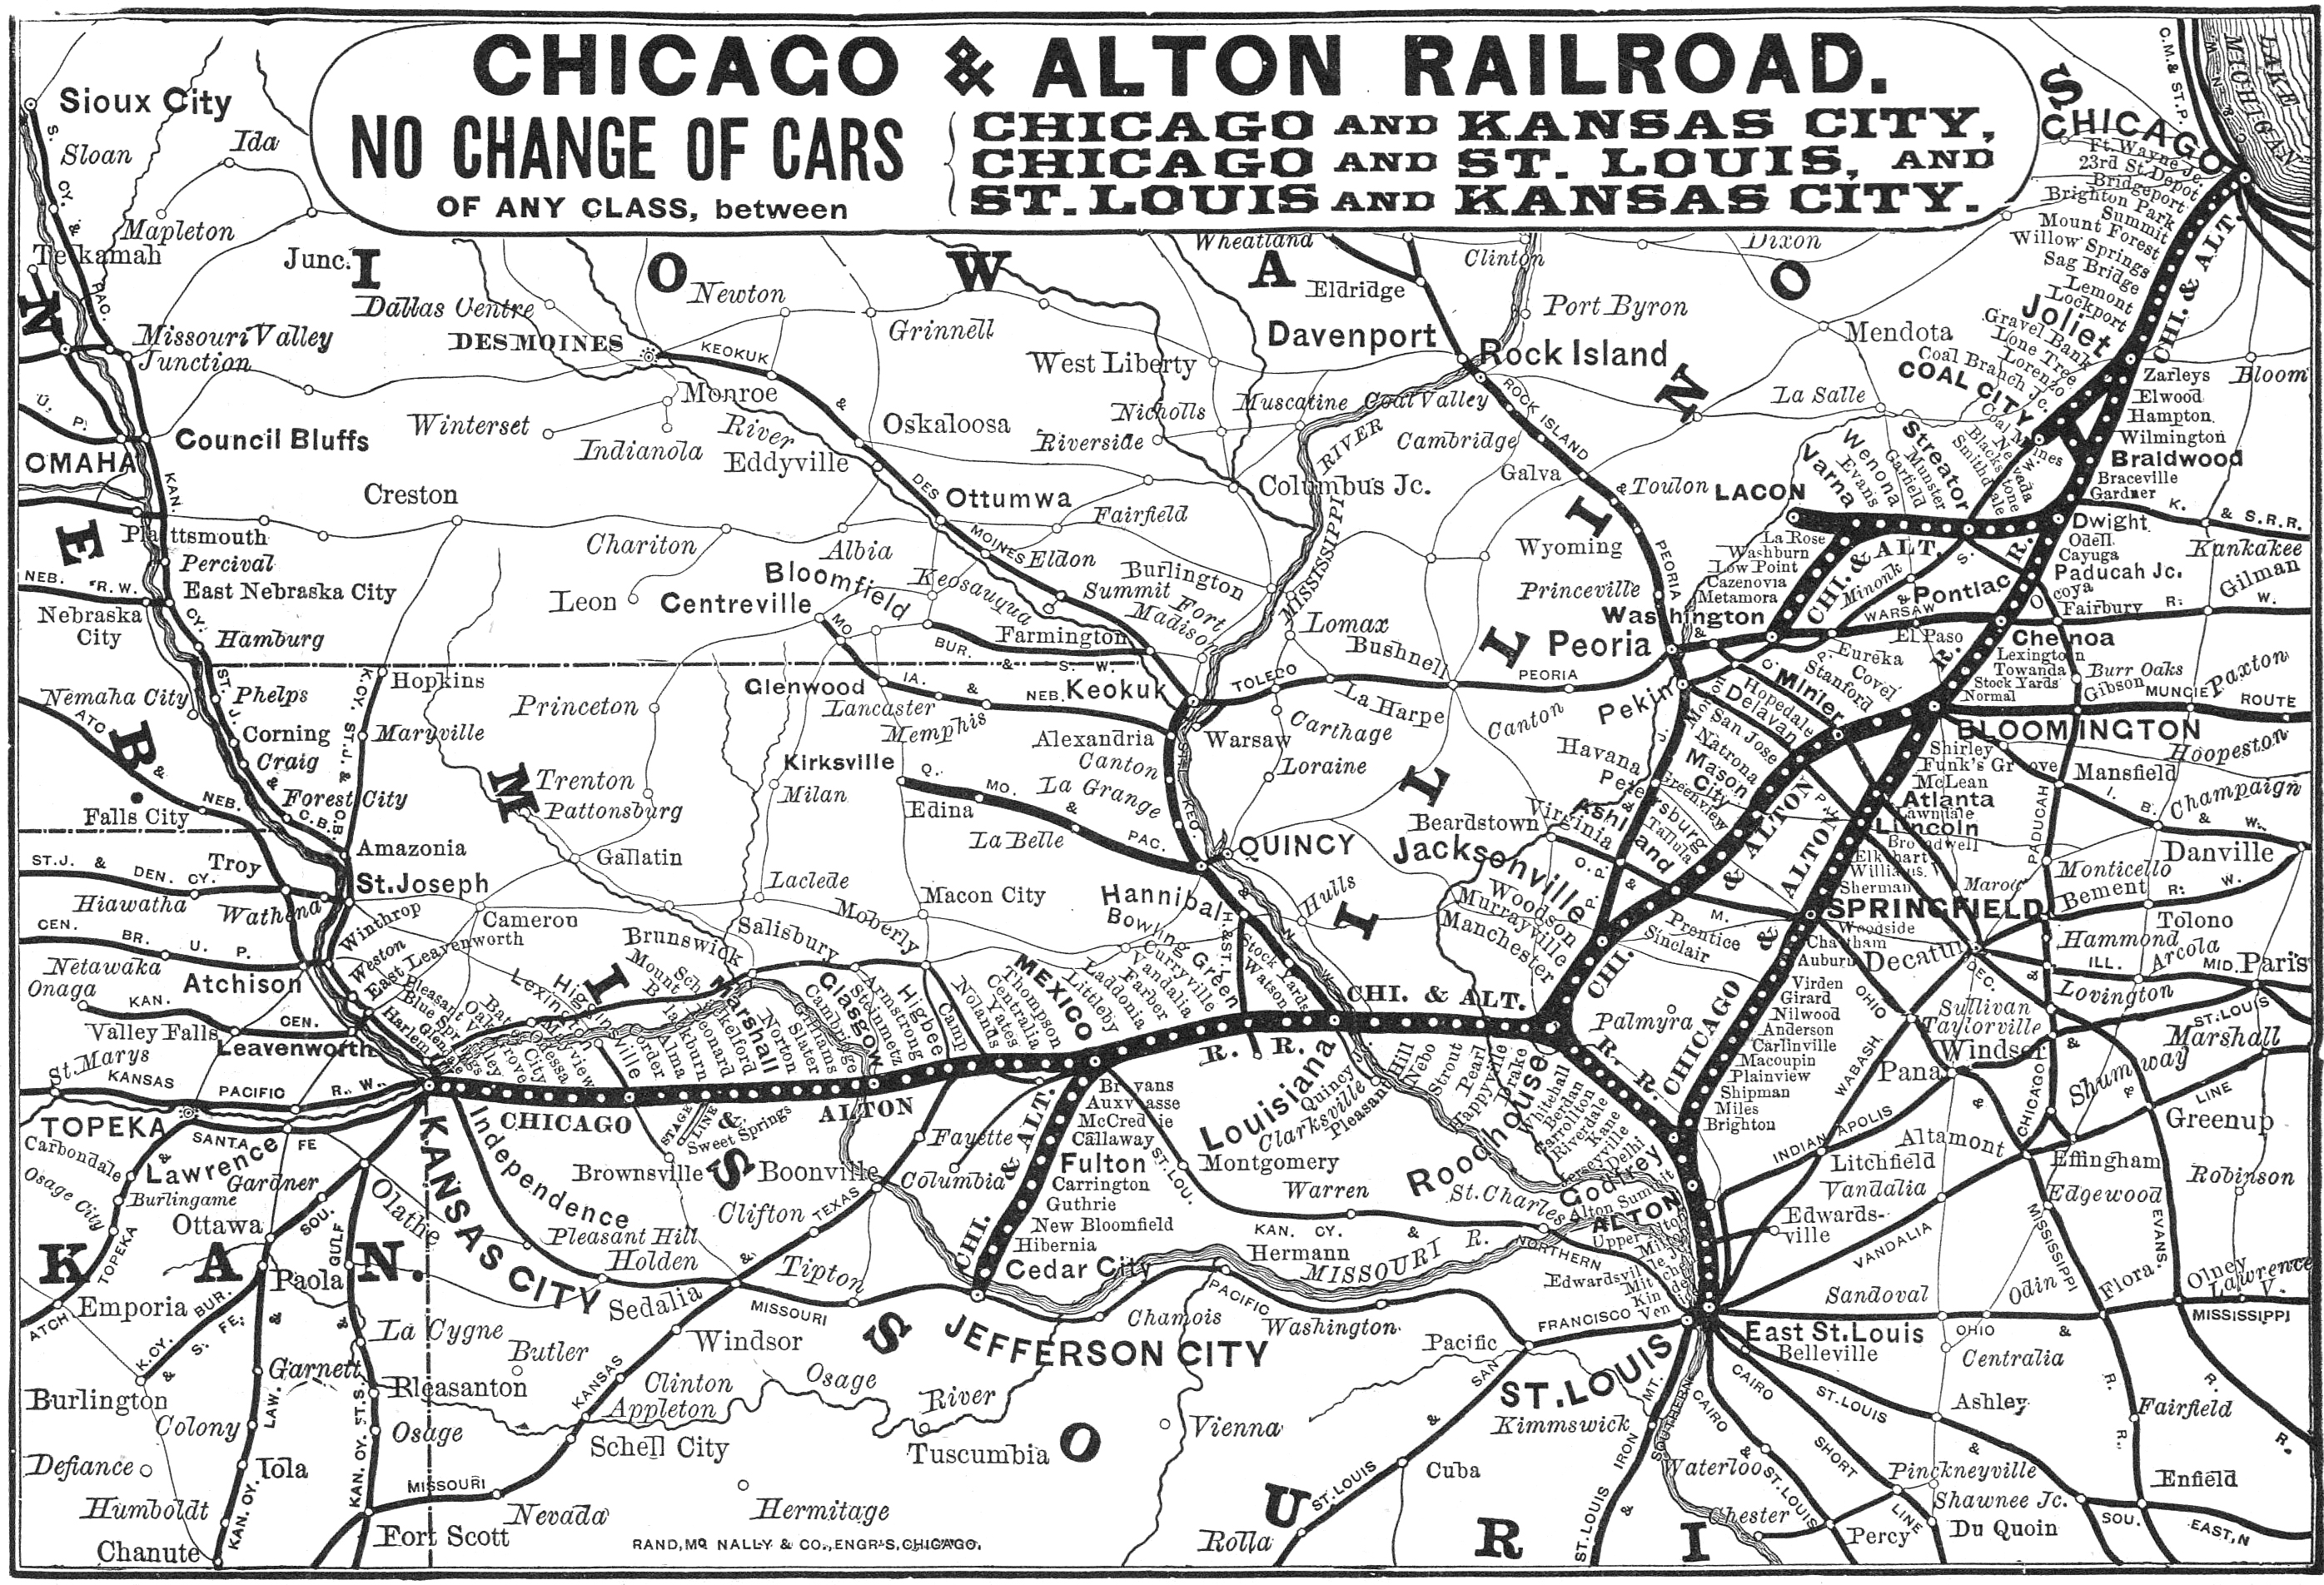 Chicago and Alton Railroad on bn railroad map, santa fe railroad map, union pacific railroad map, p&le railroad map, l&n railroad map, boct railroad map, norfolk southern train yard map, wc railroad map, csx railroad map, cn railroad map, bnsf track map, sp railroad map, kaw railroad map, texas railroad districts map, great northern railroad map, norfolk southern railroad map, dt&i railroad map, wabash railroad map, ihb railroad map, canada railroad map,